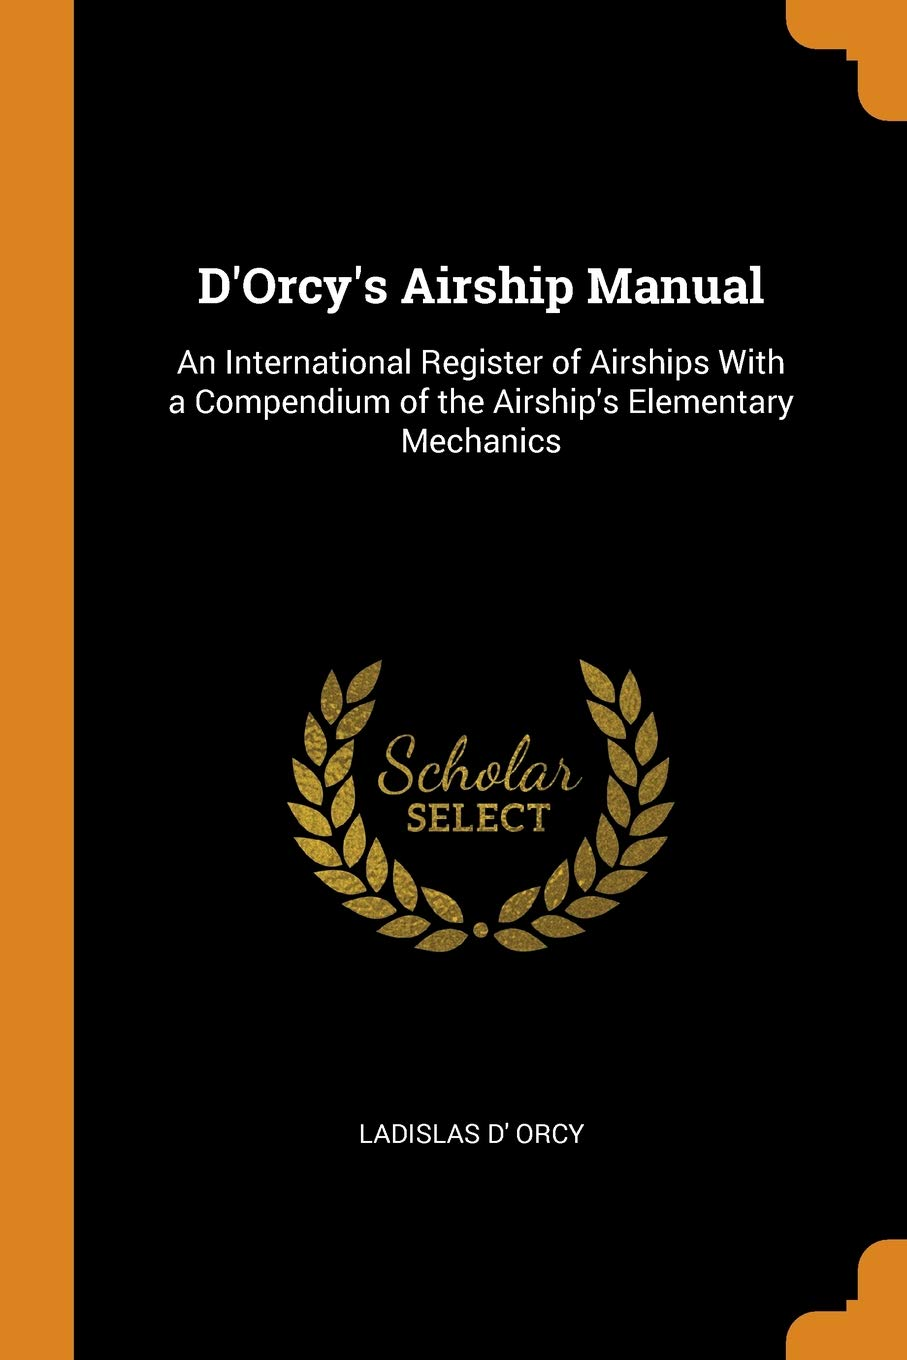 DOrcys Airship Manual: Ladislas D Orcy: 9780343674847: Amazon.com: Books